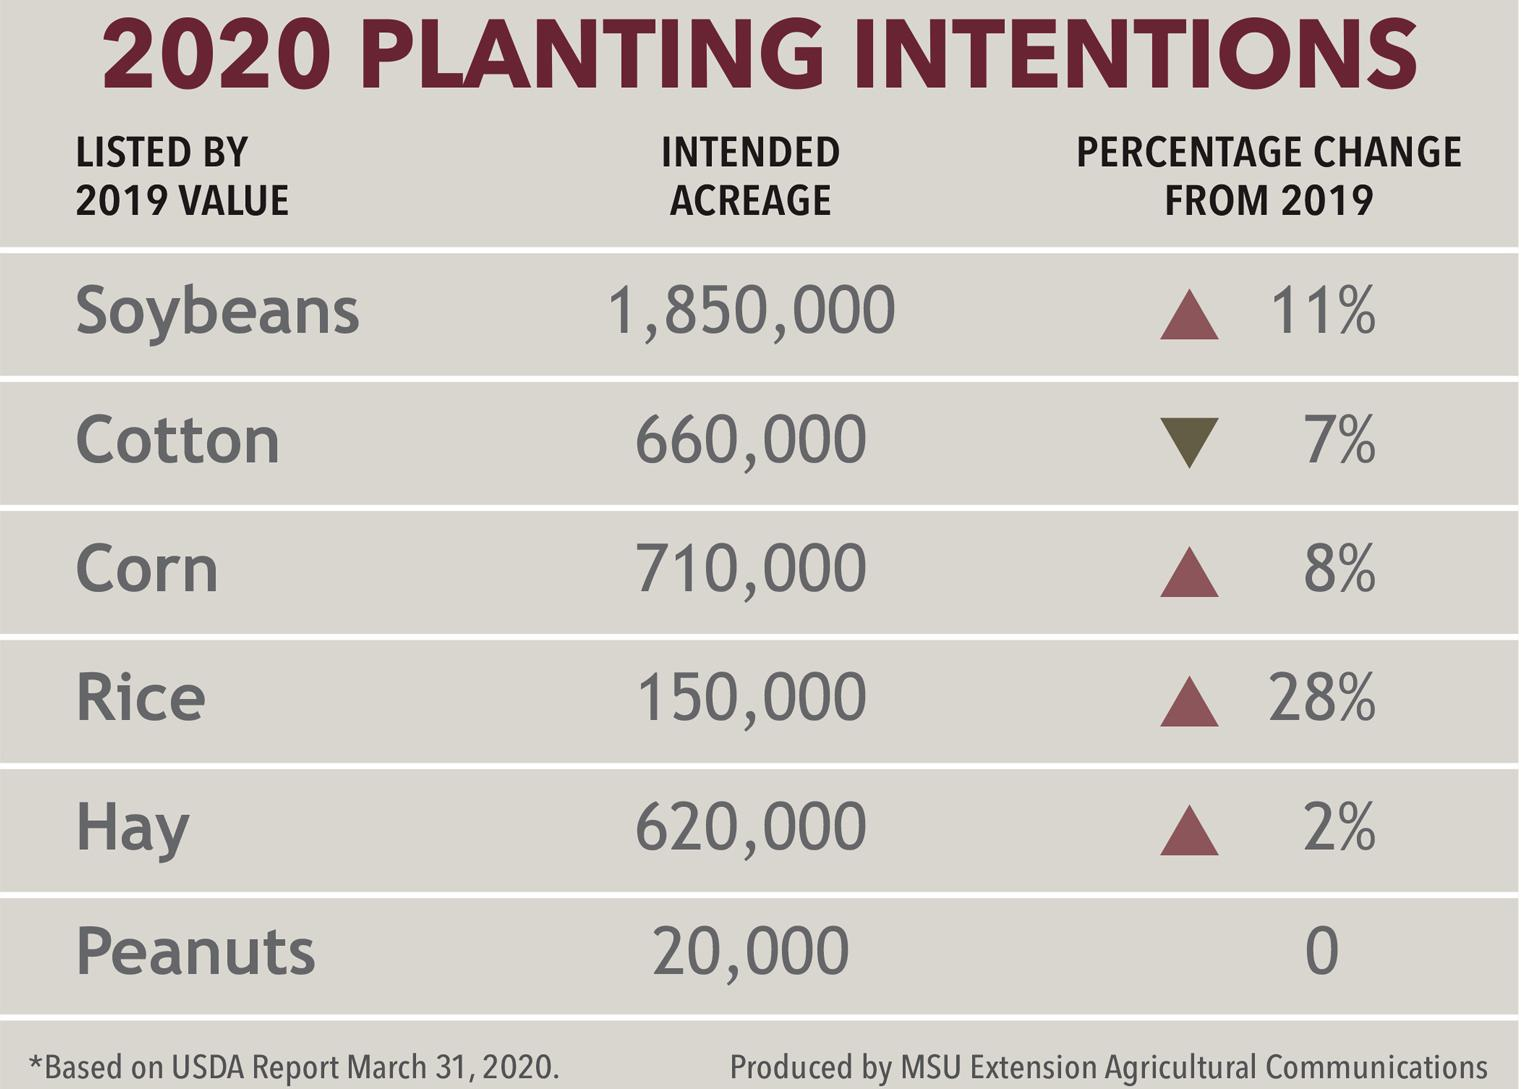 Graphic showing 2020 planting intentions